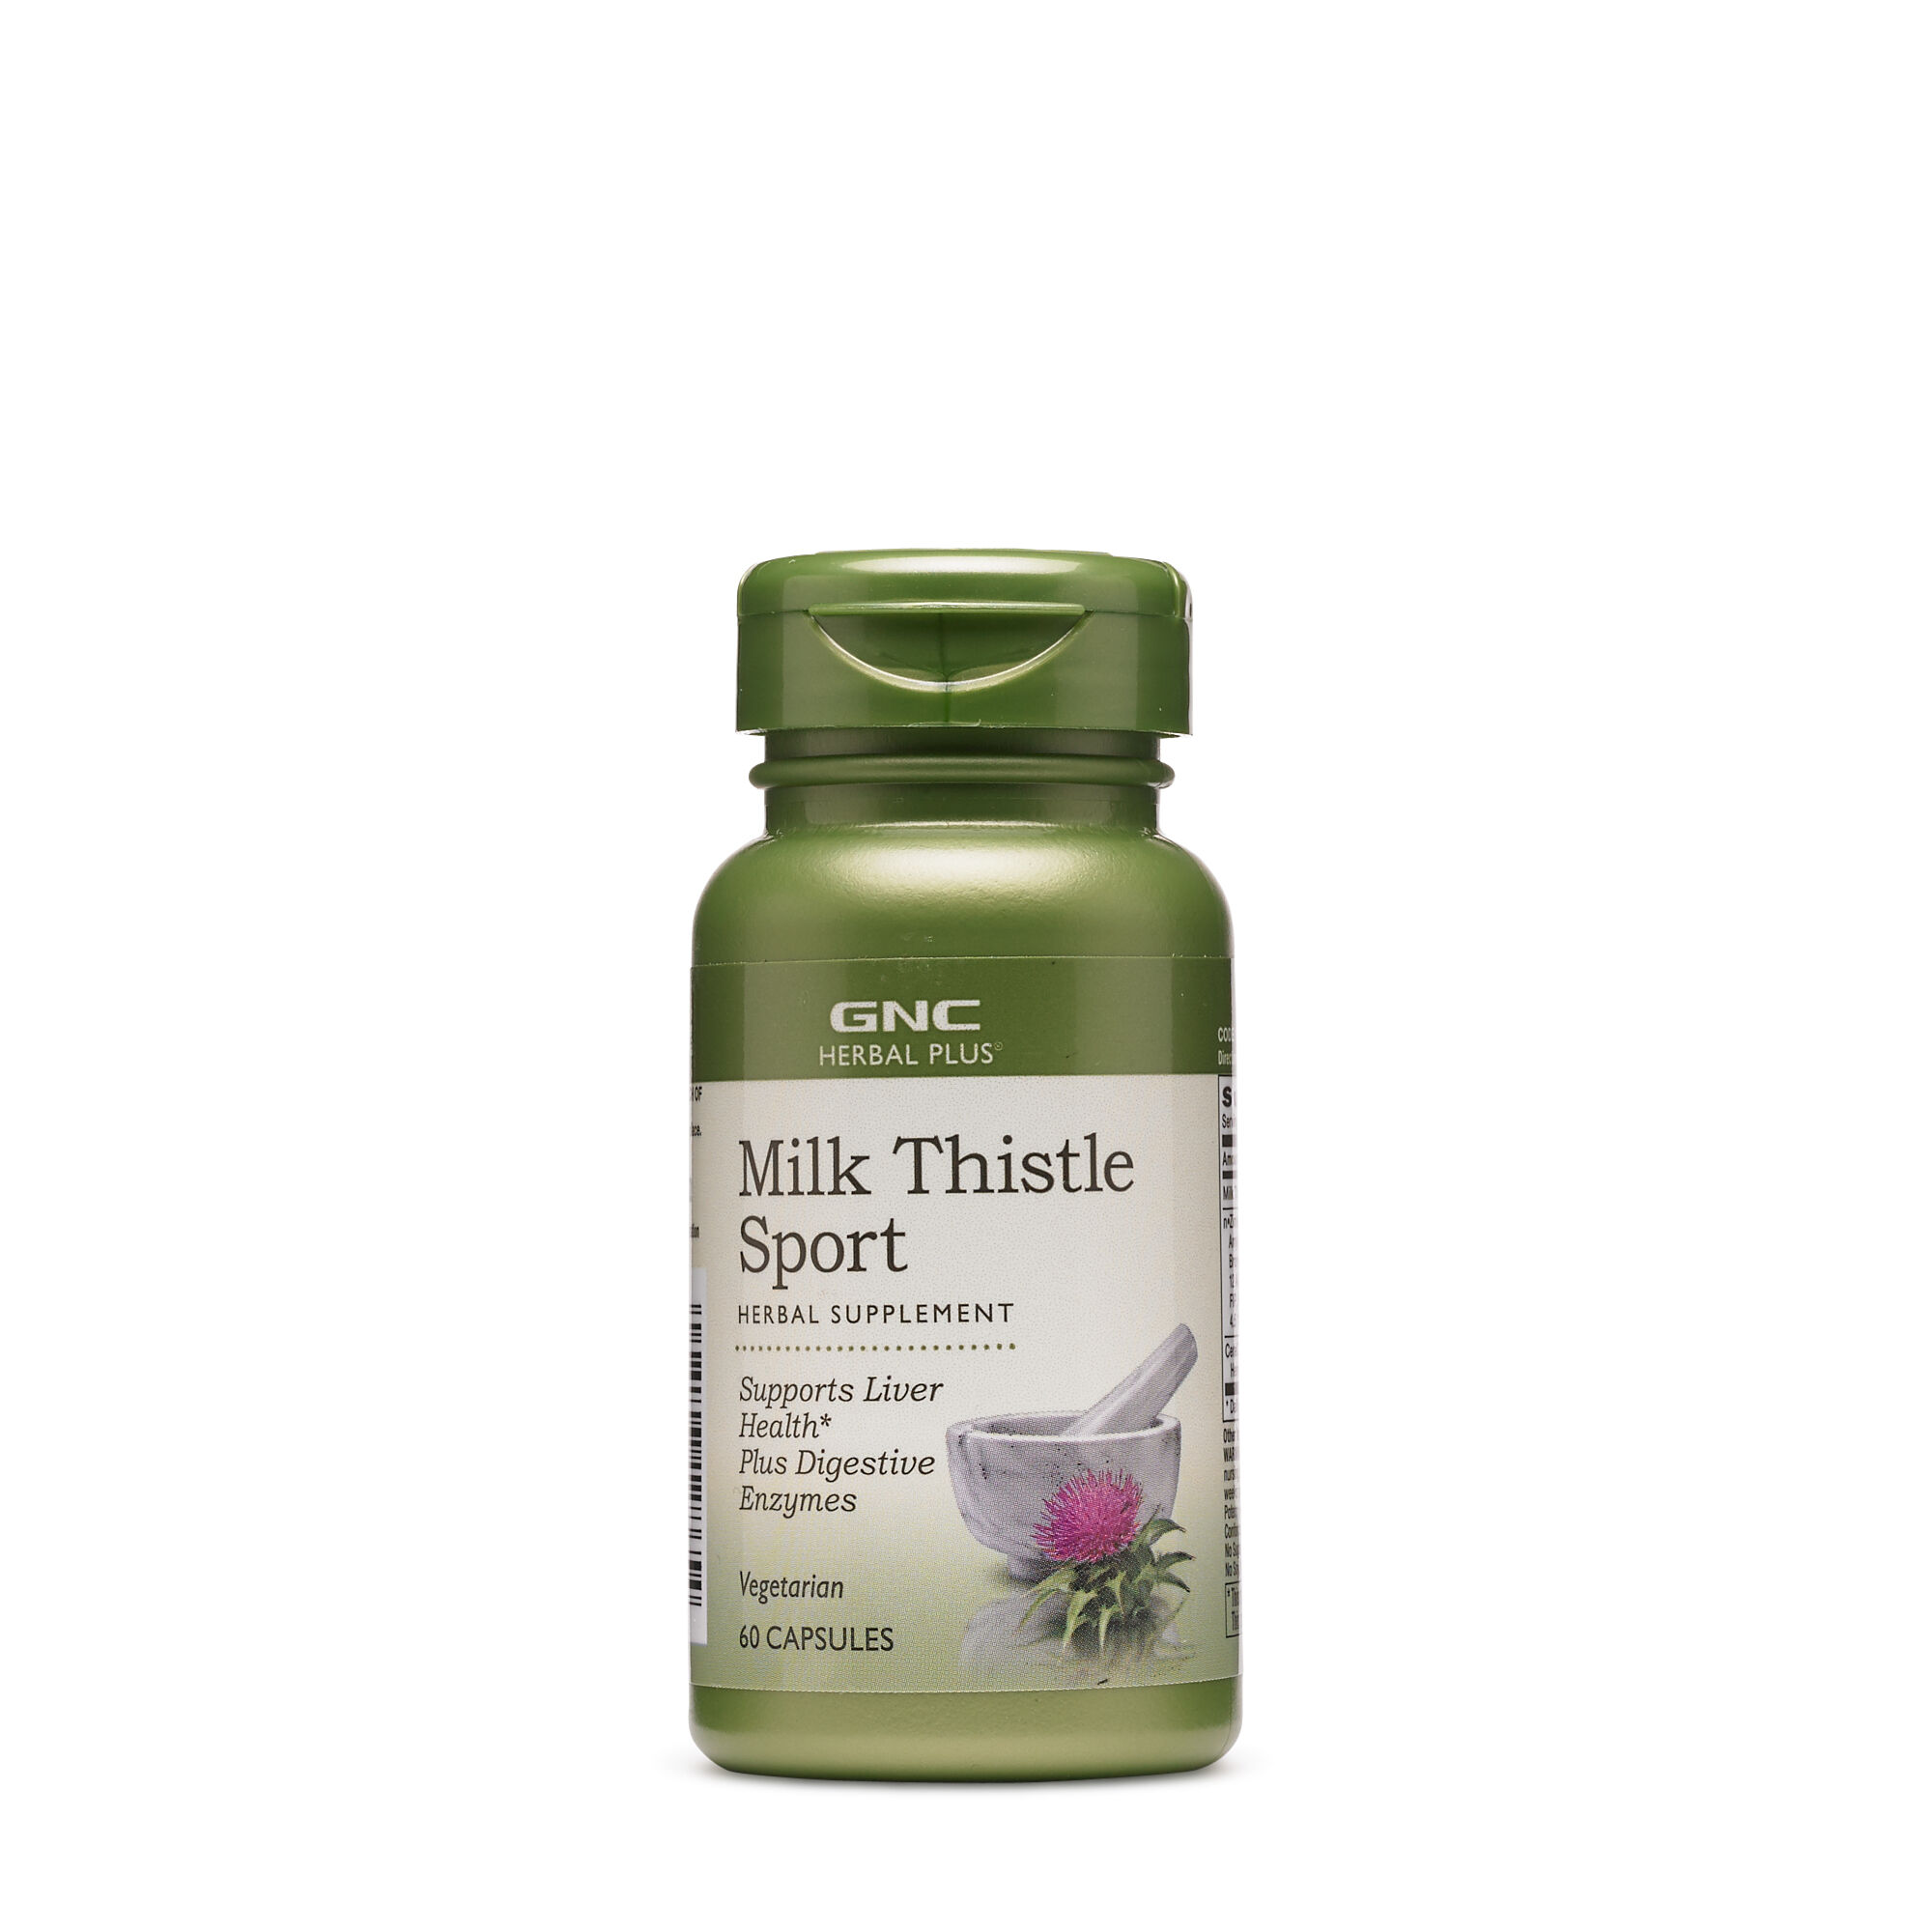 GNC밀크씨슬 스포츠 60캡슐 - Herbal Plus Milk Thistle Sport